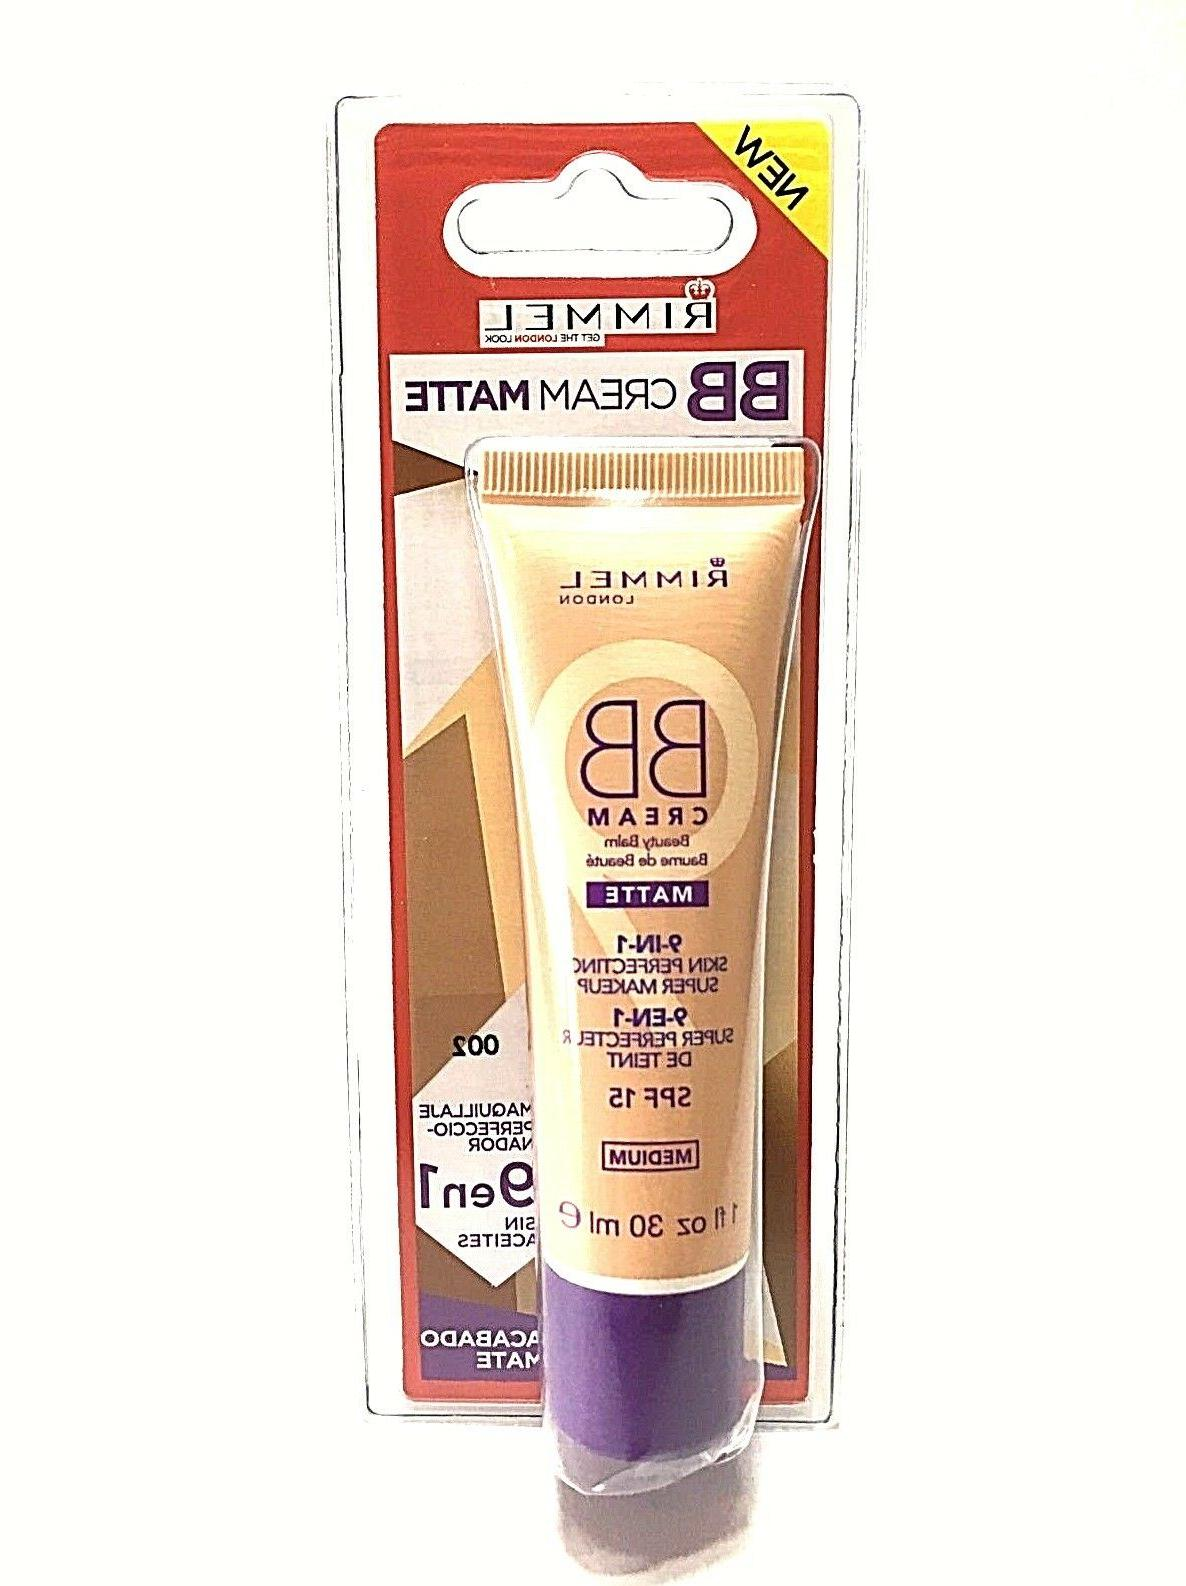 Rimmel Perfection Bb Cream 1 Fluid Ounce